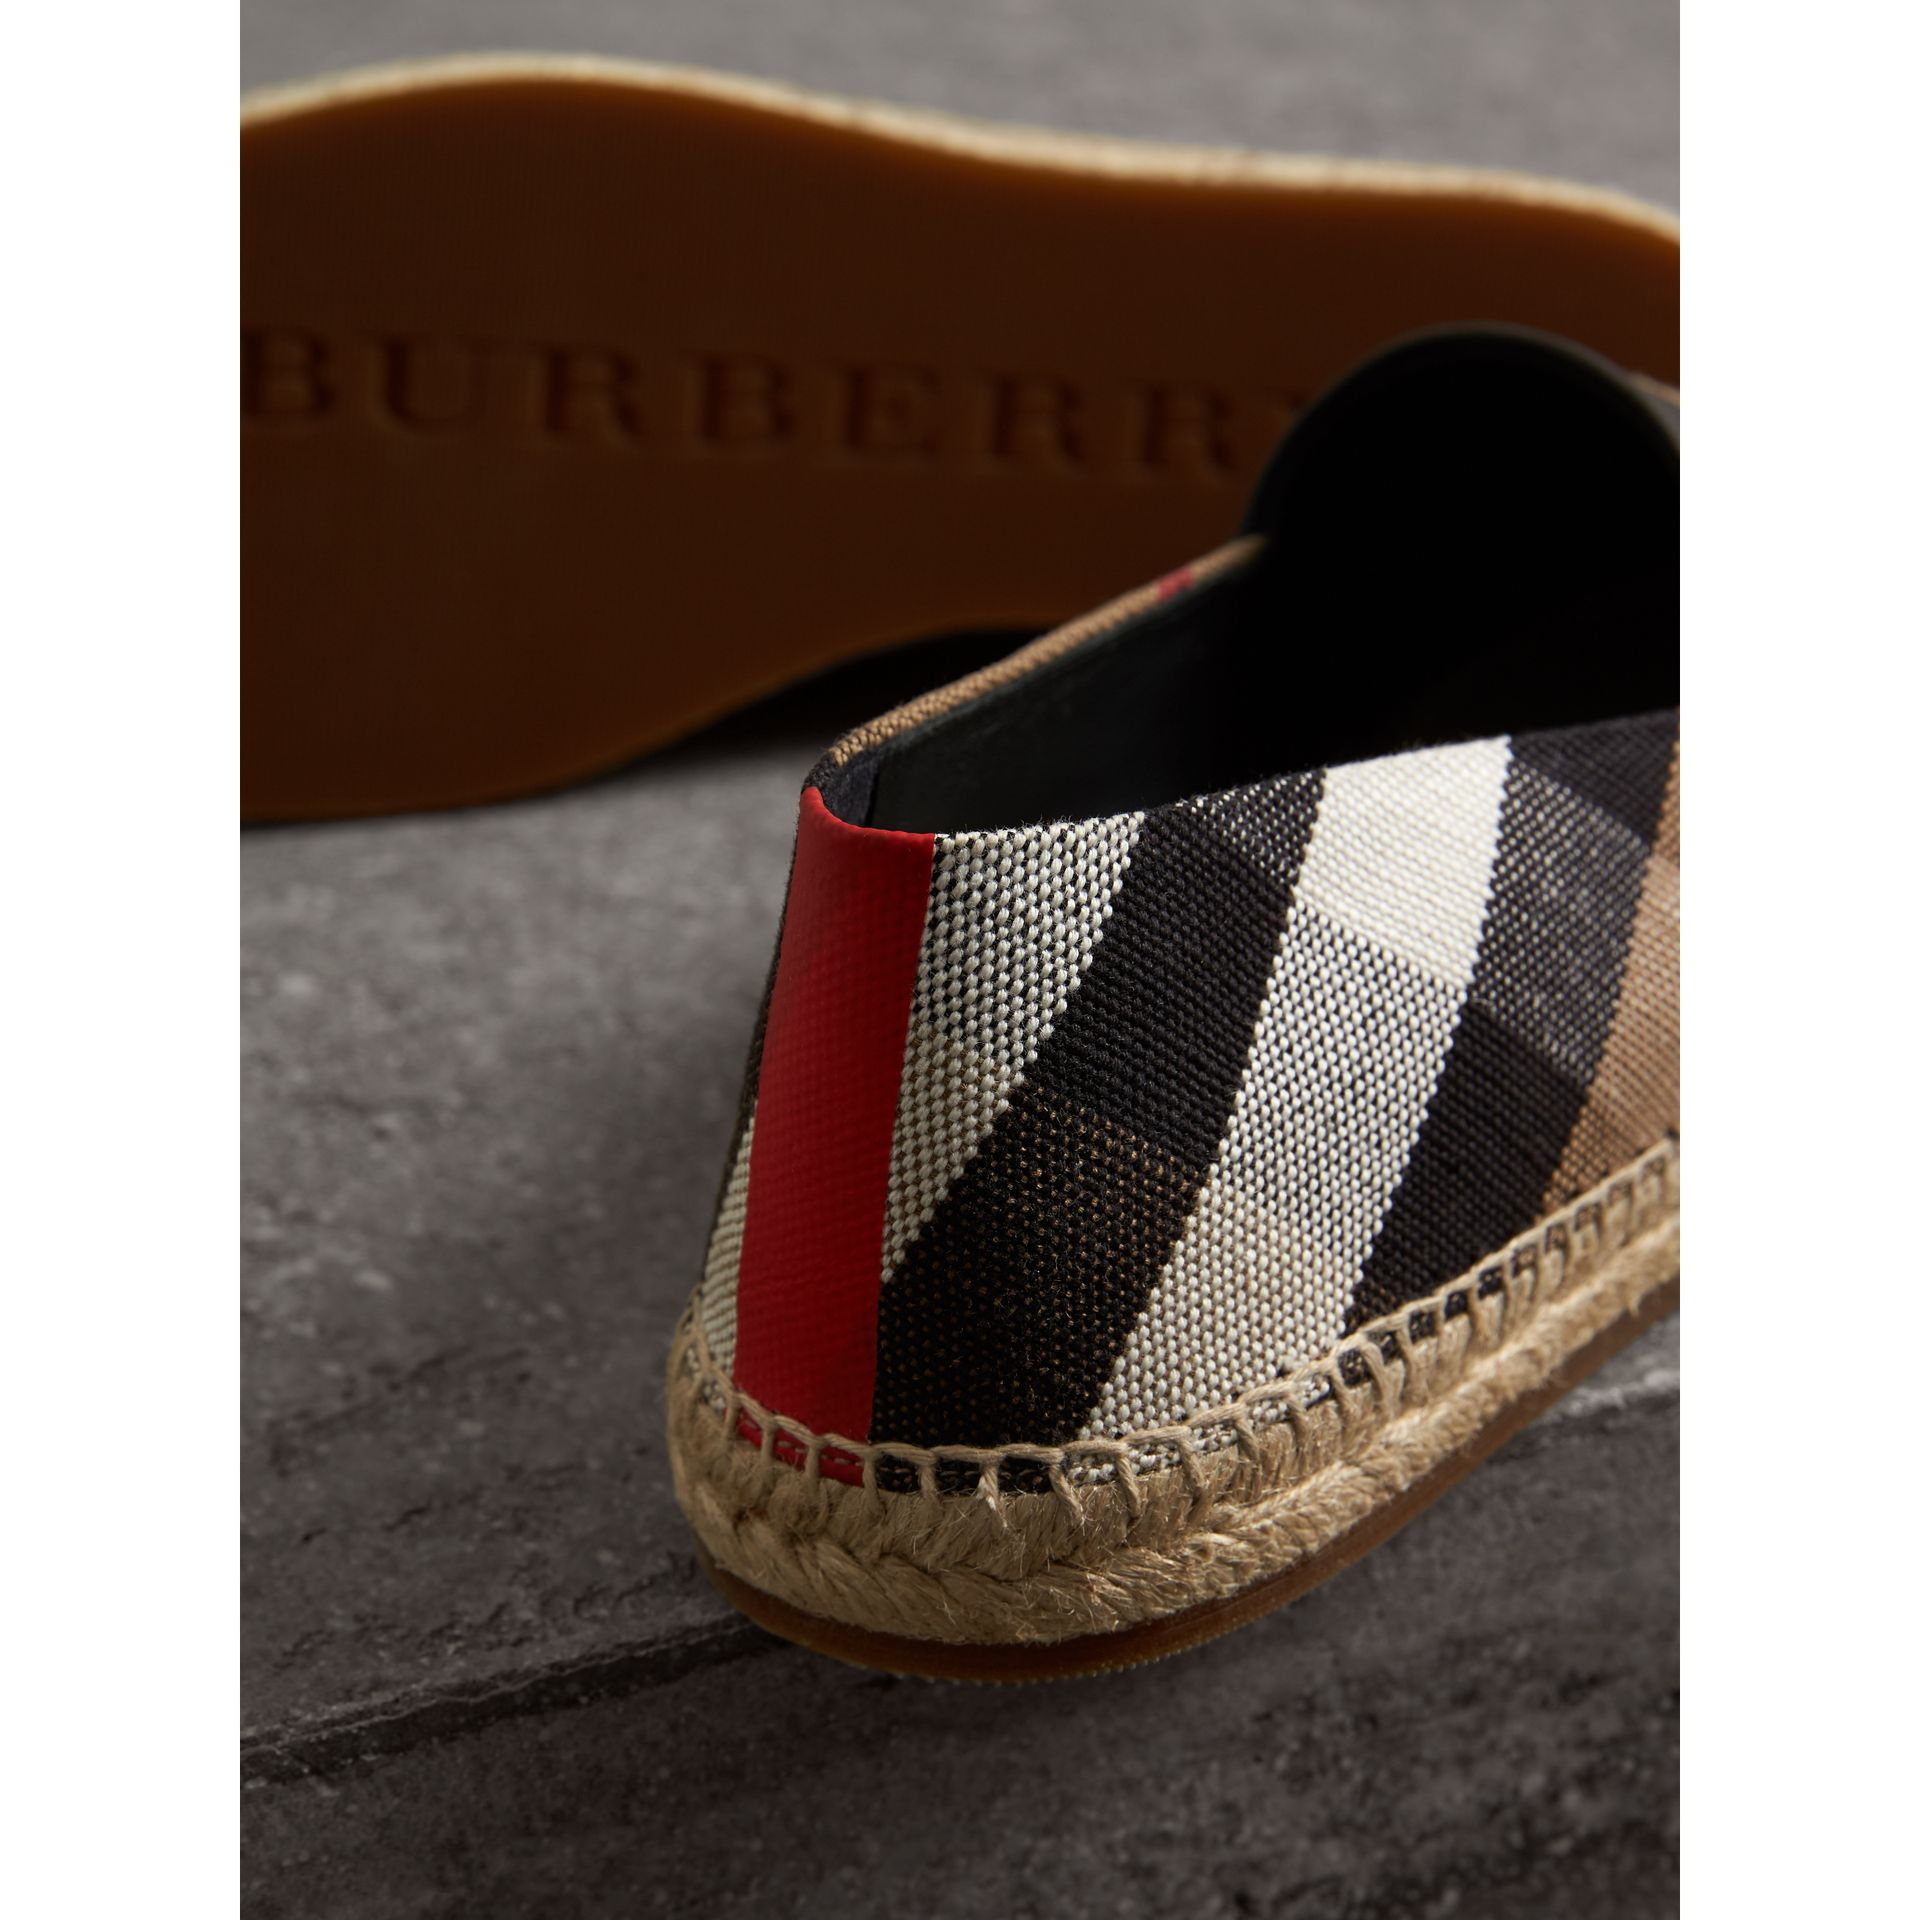 Check Cotton Canvas Seam-sealed Espadrilles in Classic - Men | Burberry Hong Kong - gallery image 1